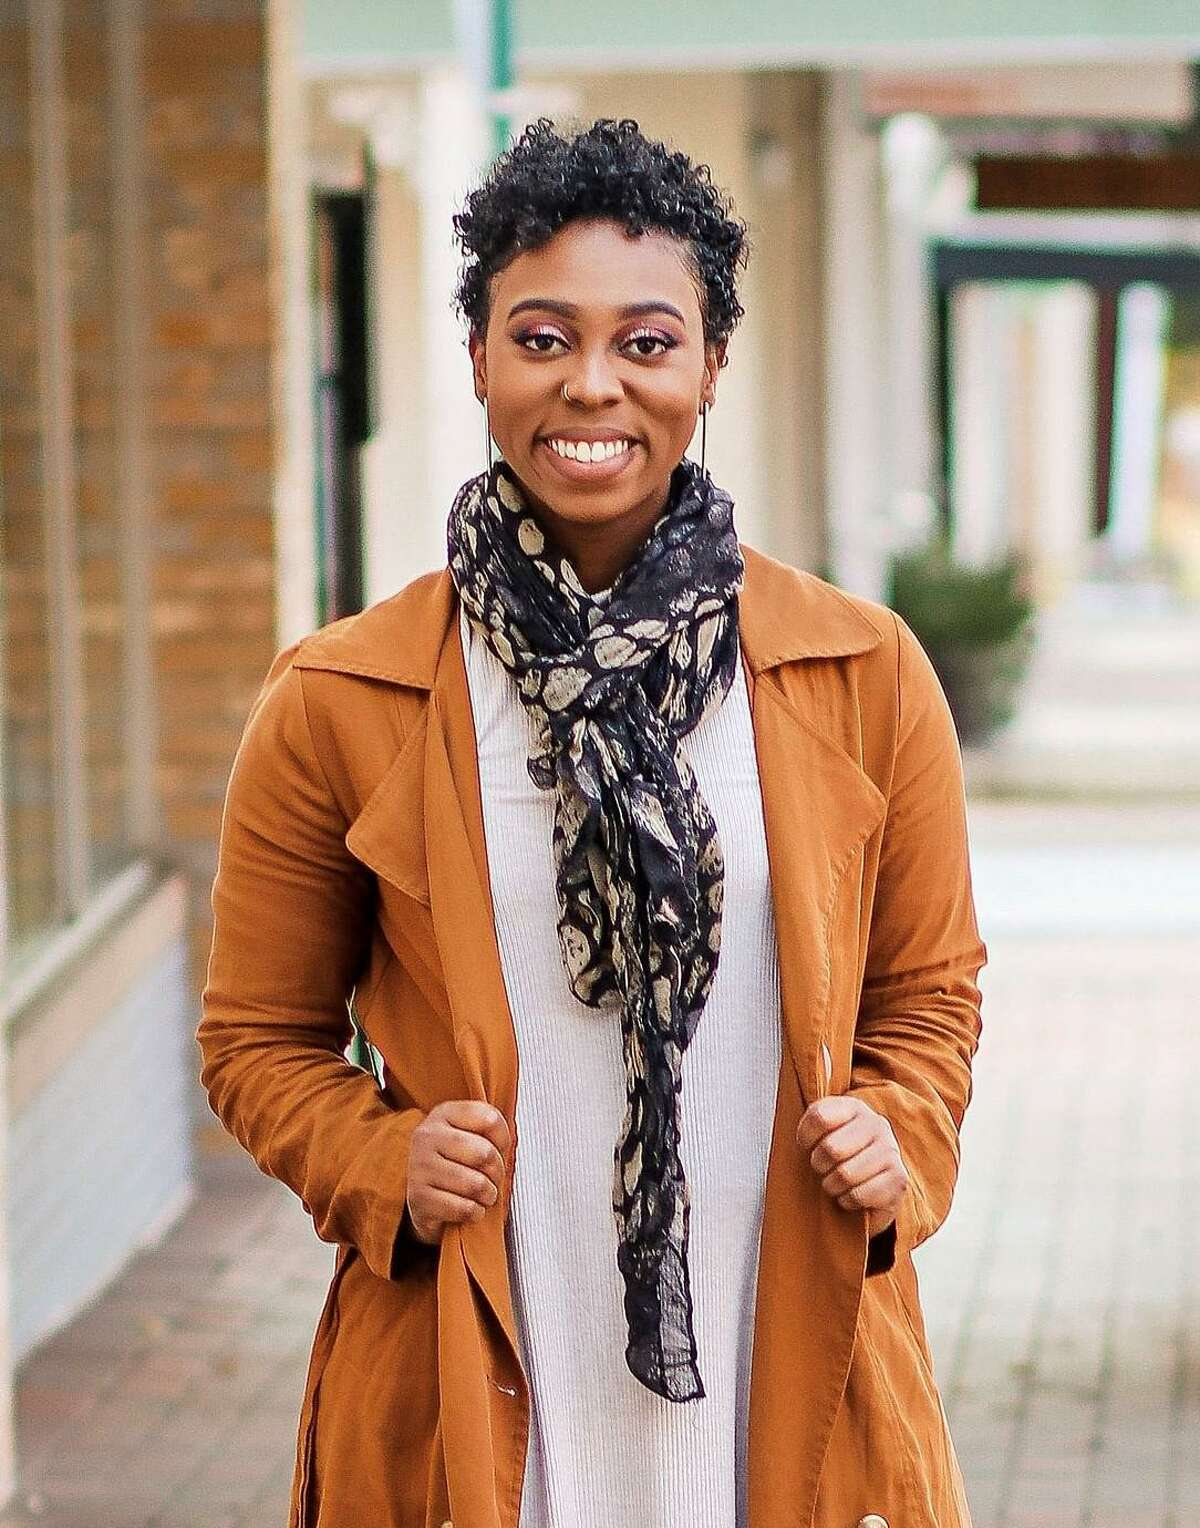 Magnolia-based artist Lois Spurlock, 24, discusses art and race in The Sunday Conversation.